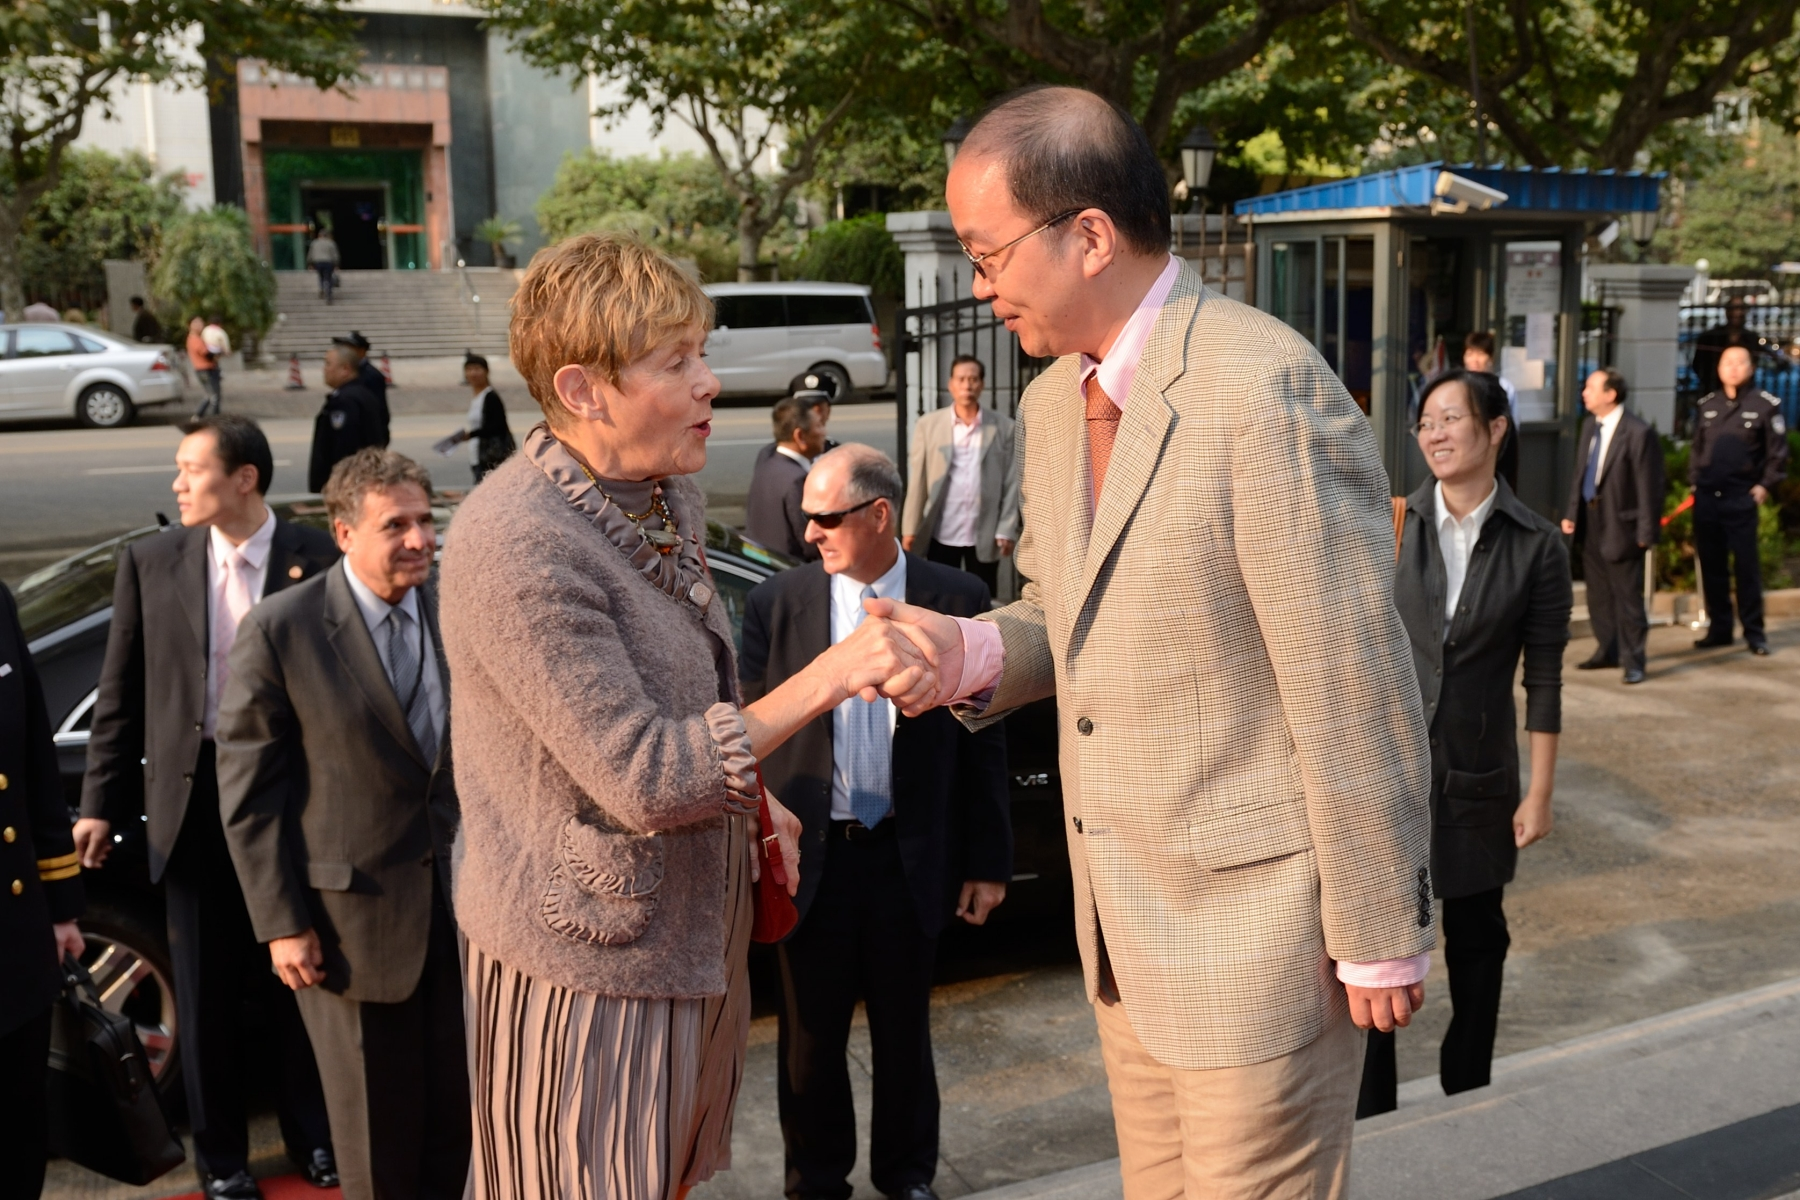 For her part, Her Excellency had the opportunity to tour the Shanghai Mental Health Centre, at Shanghai Jiao Tong University School of Medicine.